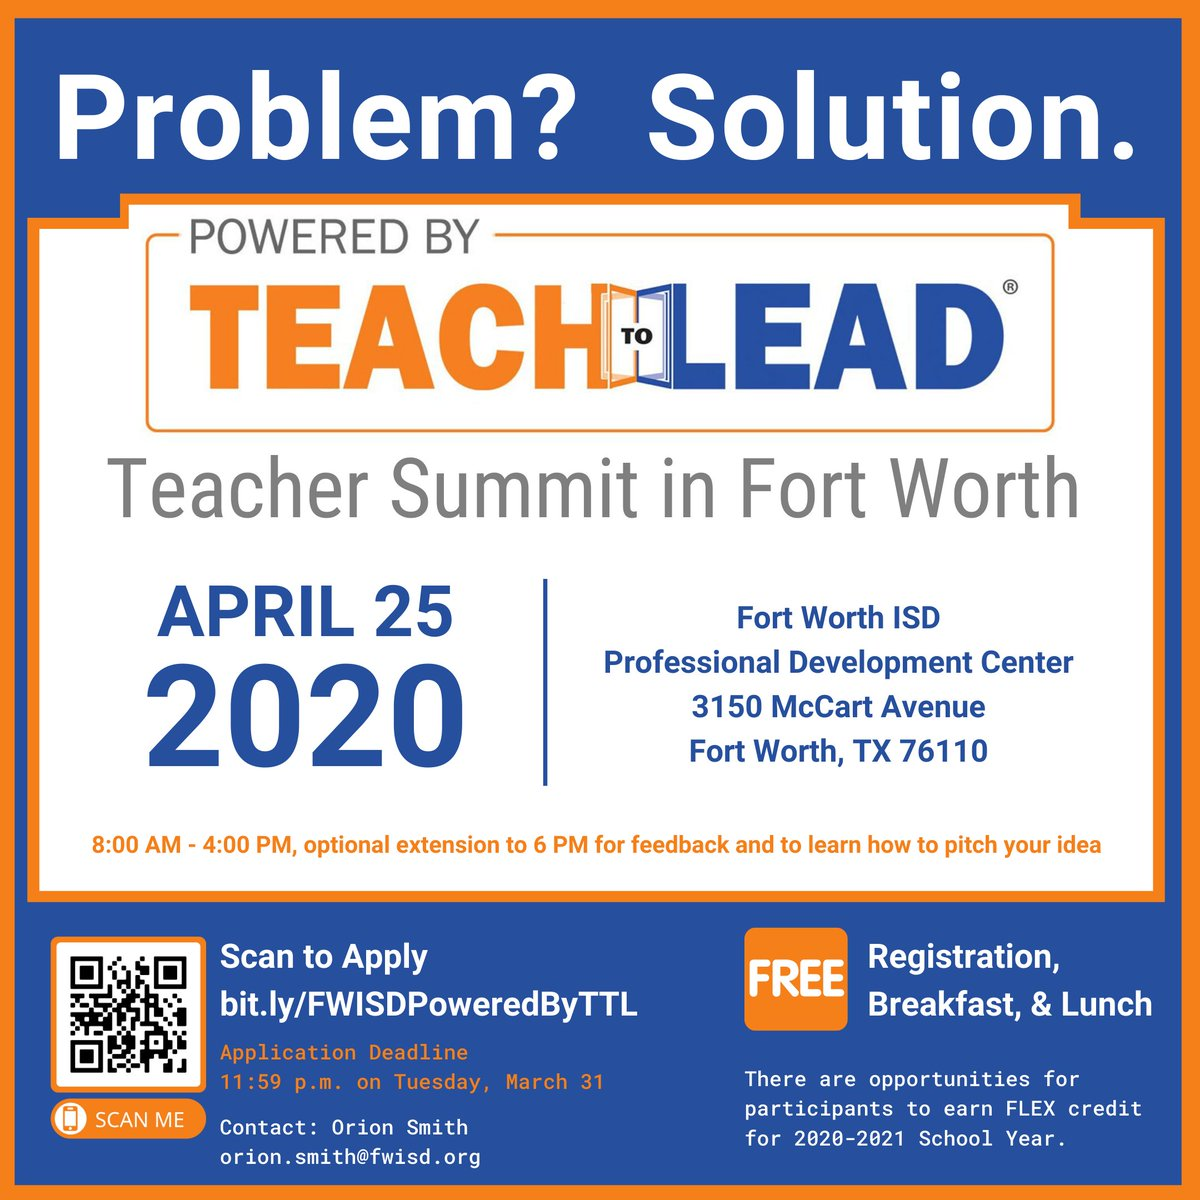 Learn more about the FORT WORTH #PoweredbyTTL Summit! #FWISD fwisd.org/Page/23361